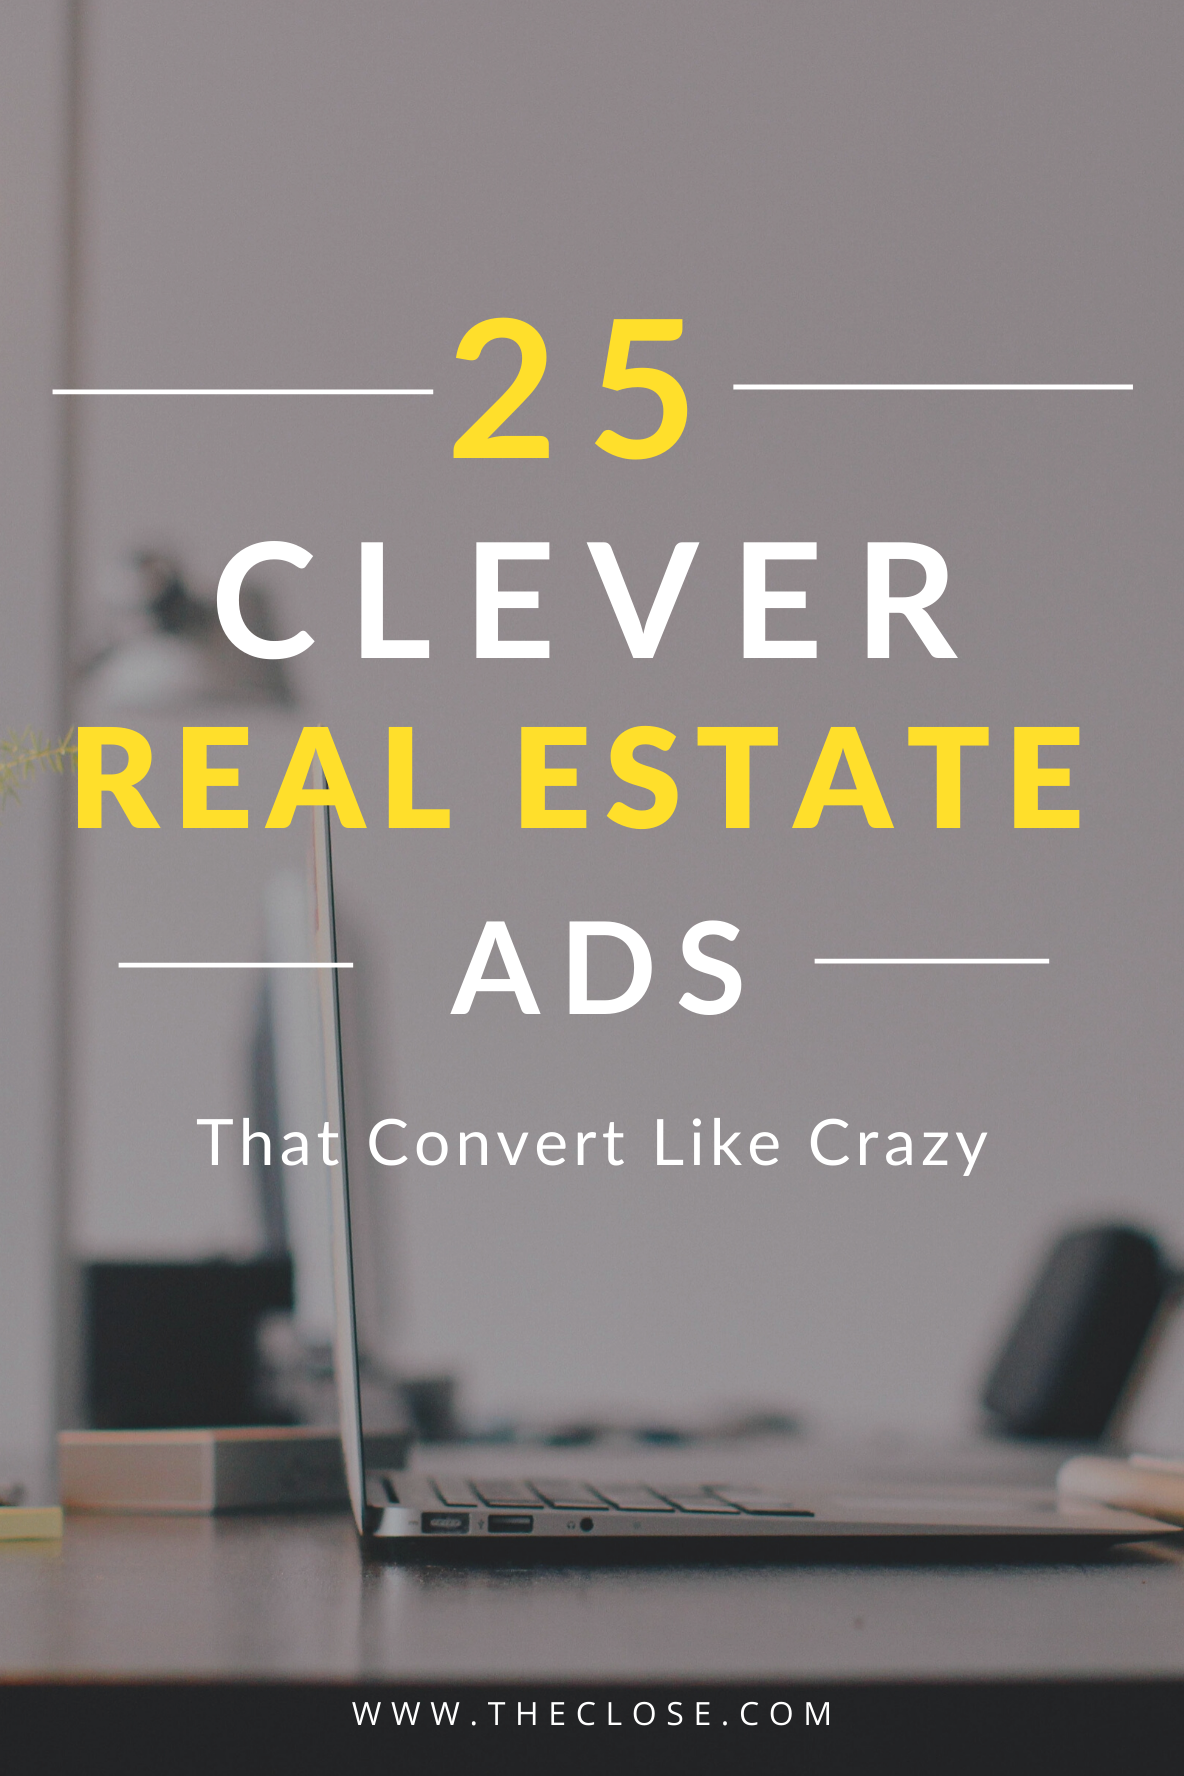 Clever Real Estate Ads That Convert Like Crazy